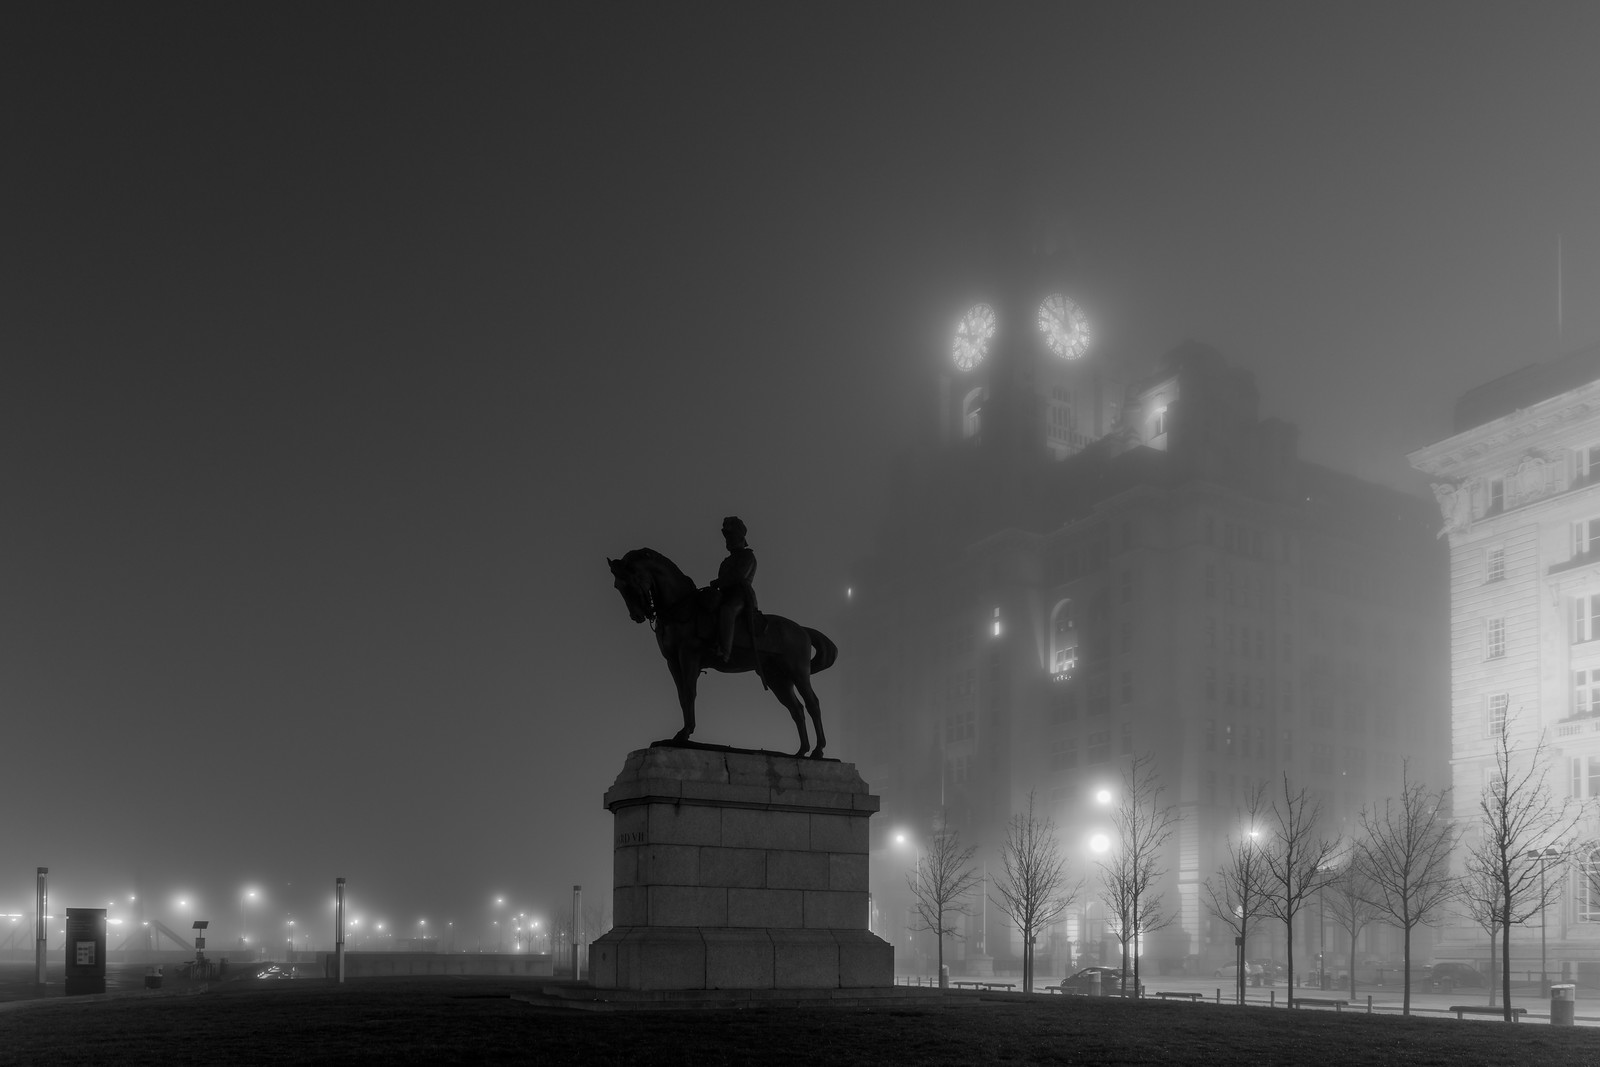 King Edward VII Monument, Pier Head, Liverpool and Royal Liver Building in the fog at night